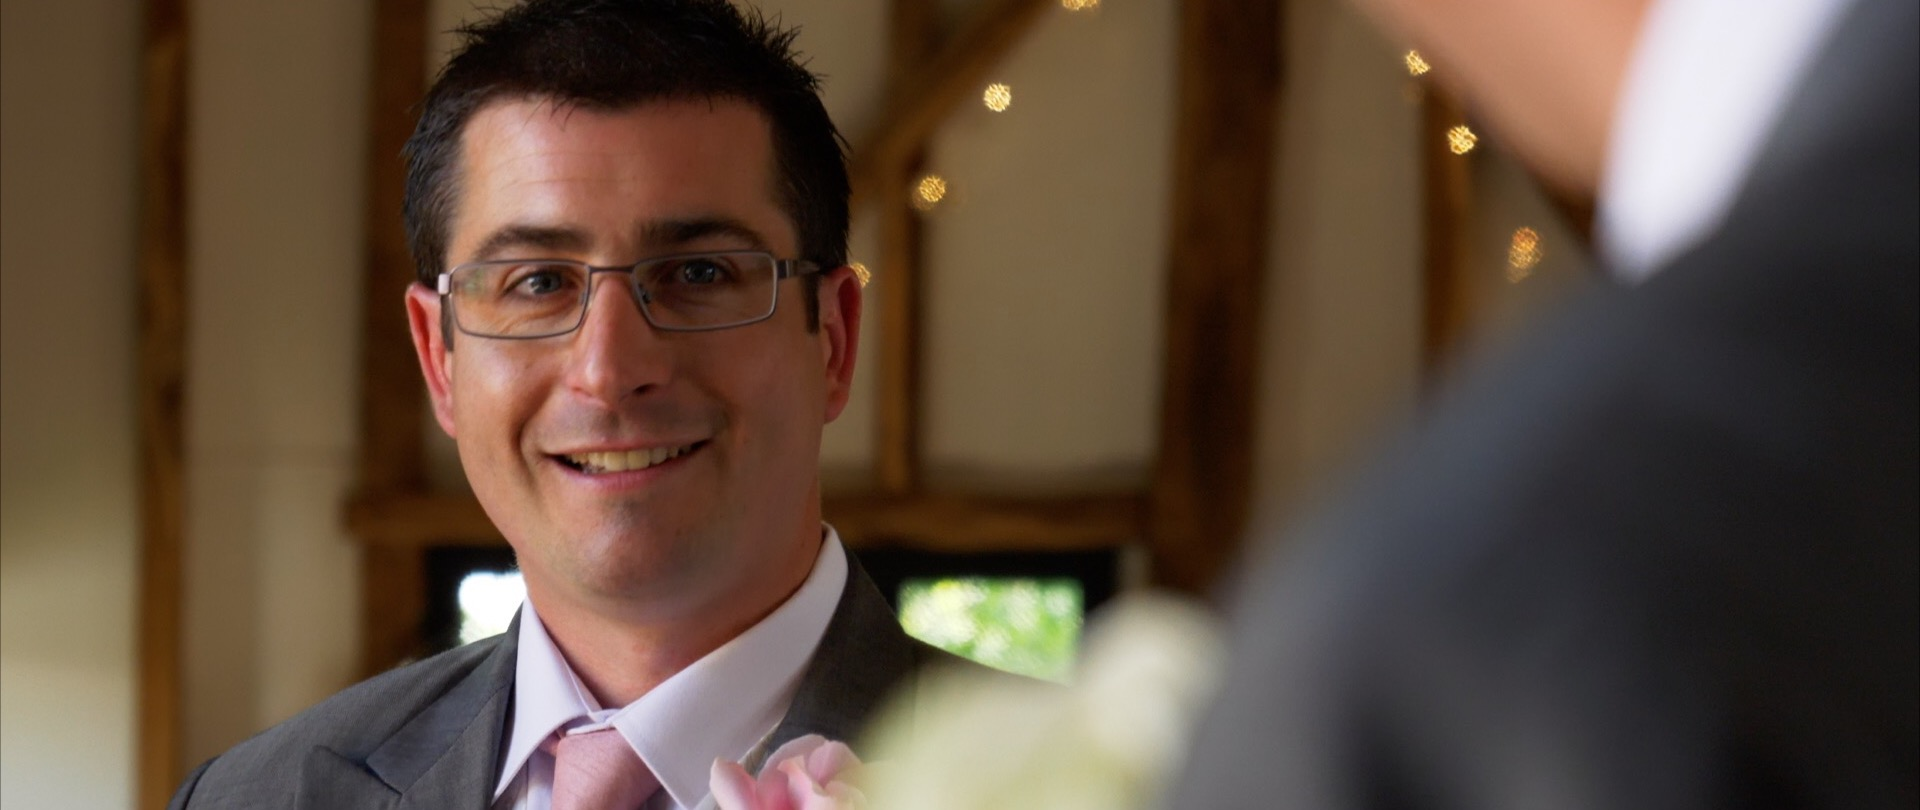 The Groom at High House Essex.jpg